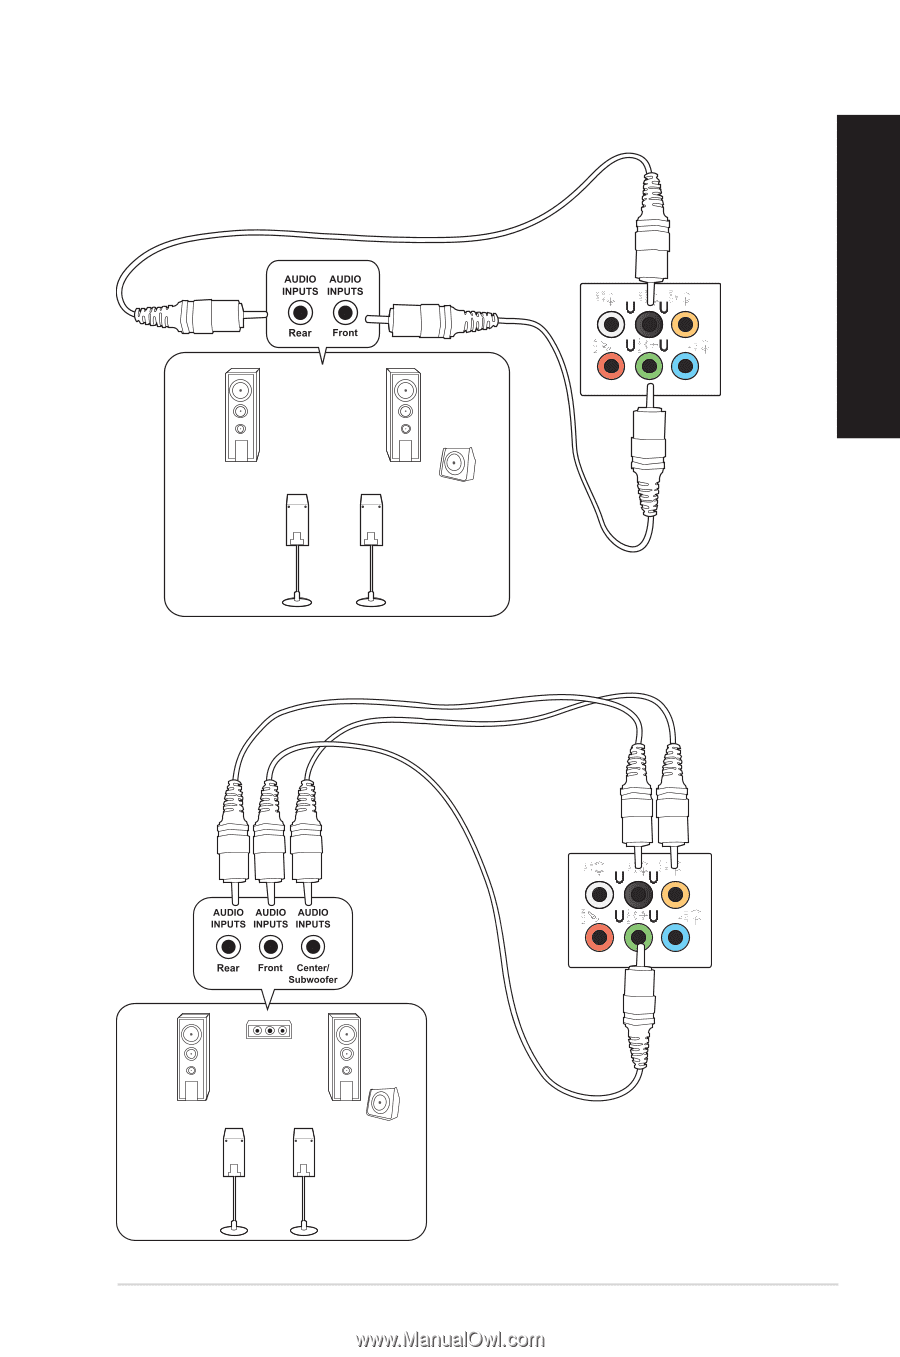 Connecting 4-channel Speakers, Connecting 5.1-channel